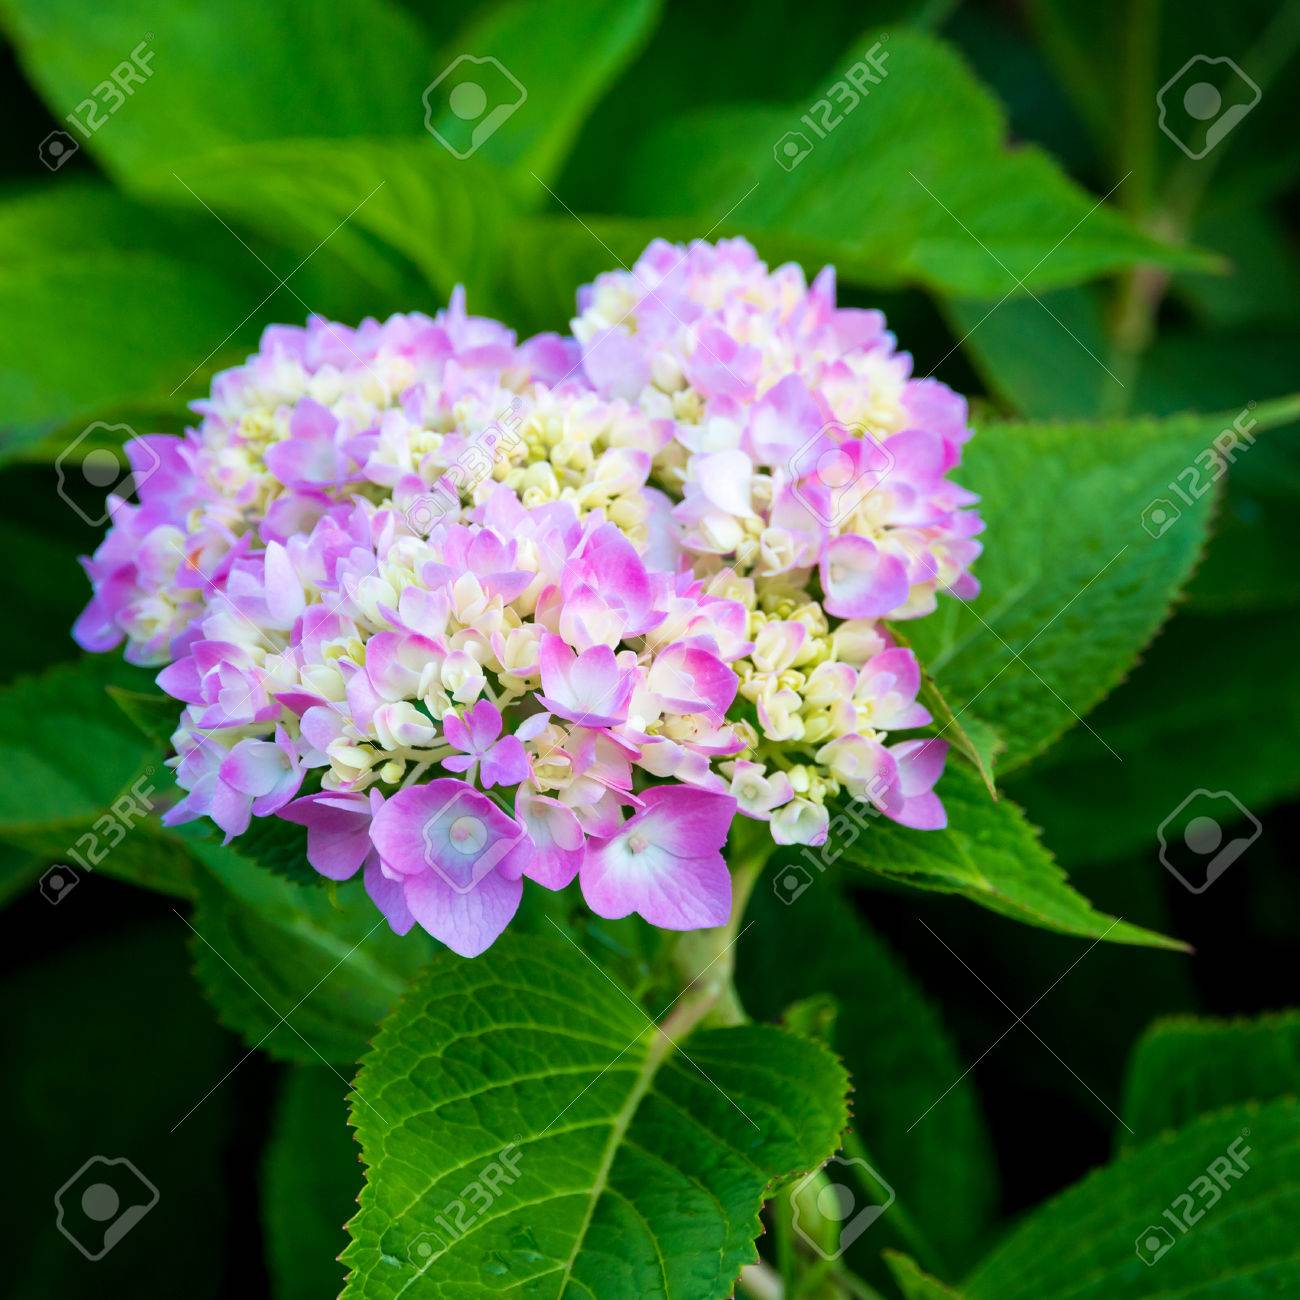 Pink White Hydrangea Flowers In A Garden Selective Focus Stock